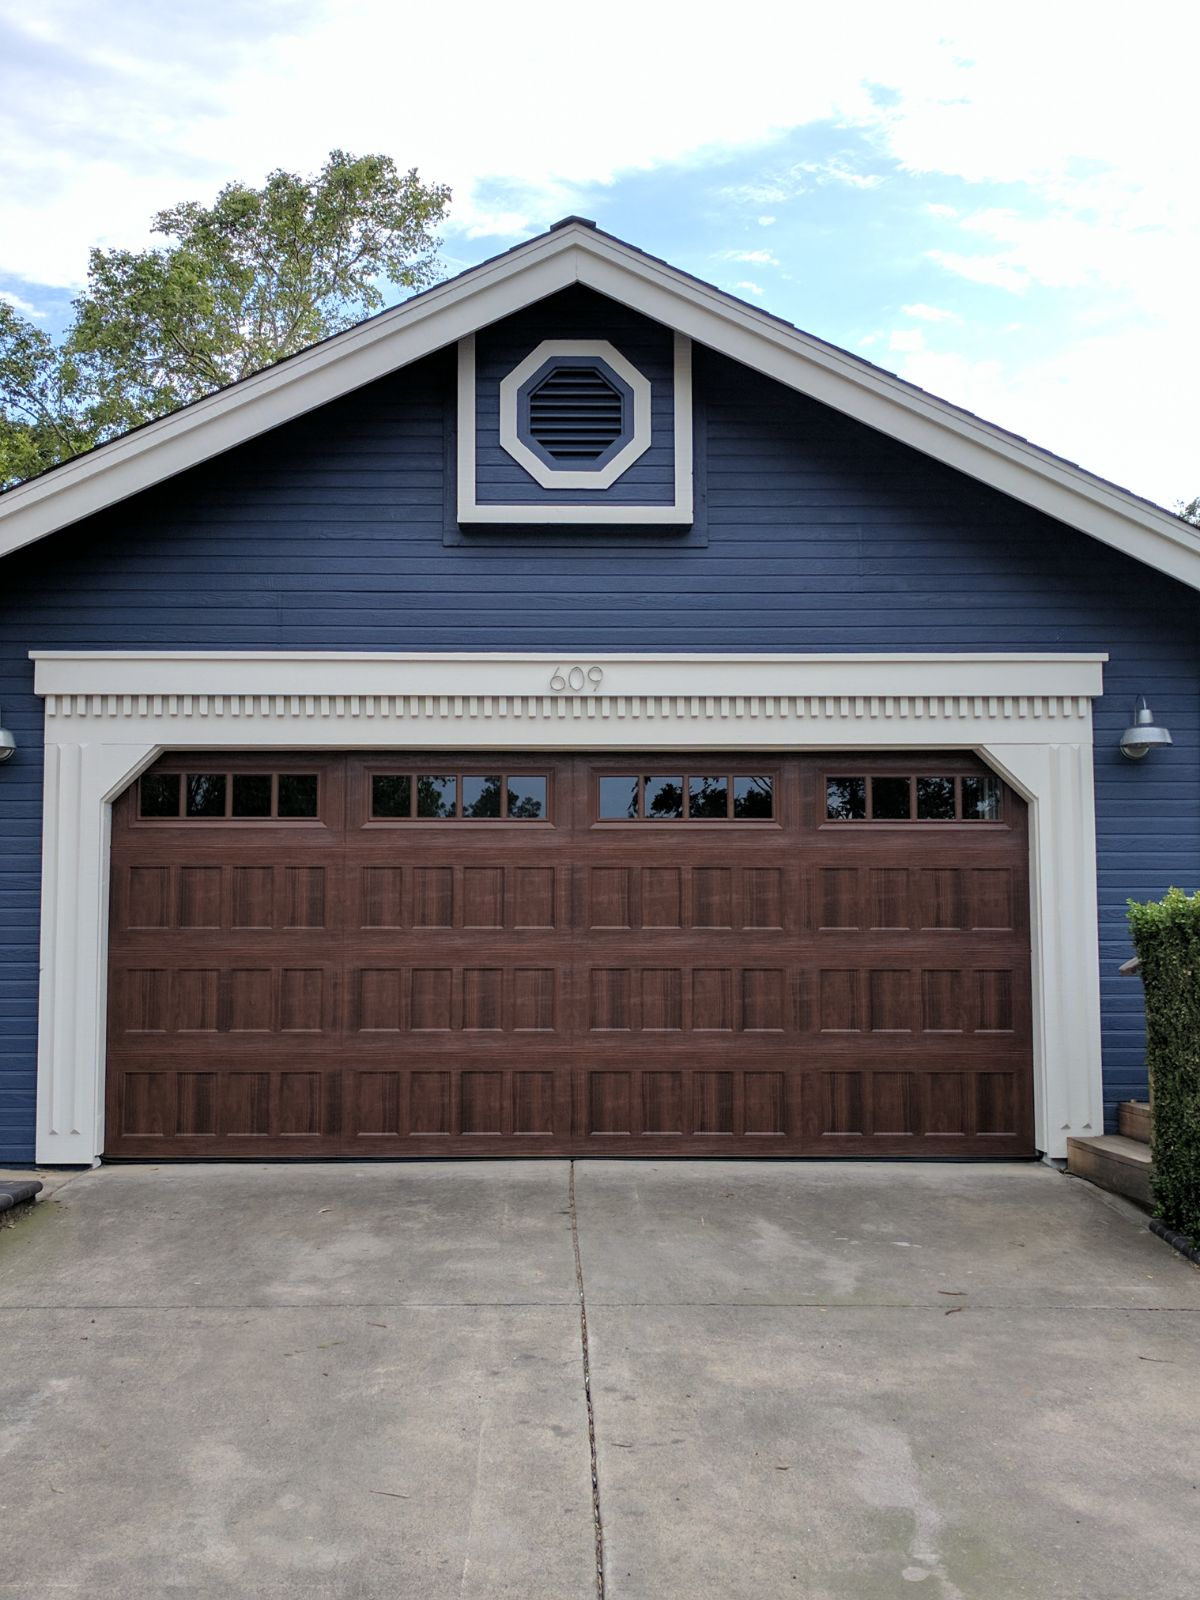 1600 #394965  Oak Summit 1000 Walnut Garage Door Perfect Solutions Garage Door picture/photo Oak Garage Doors 38491200